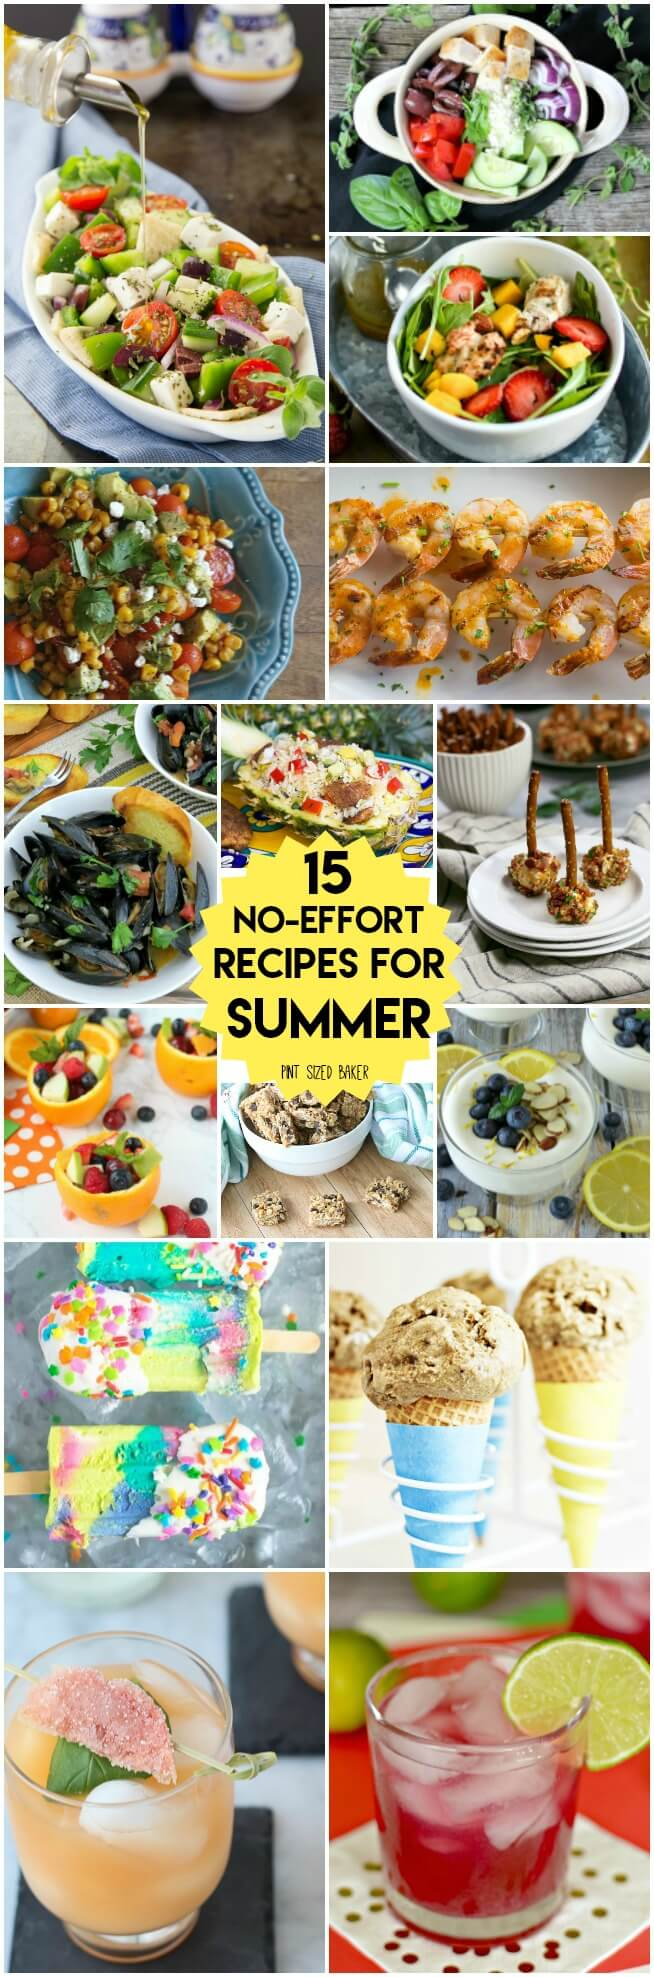 15 Perfect no effort recipes for summer. Load up on Salads, main dishes, desserts and drinks so that you can relax and enjoy the summer.